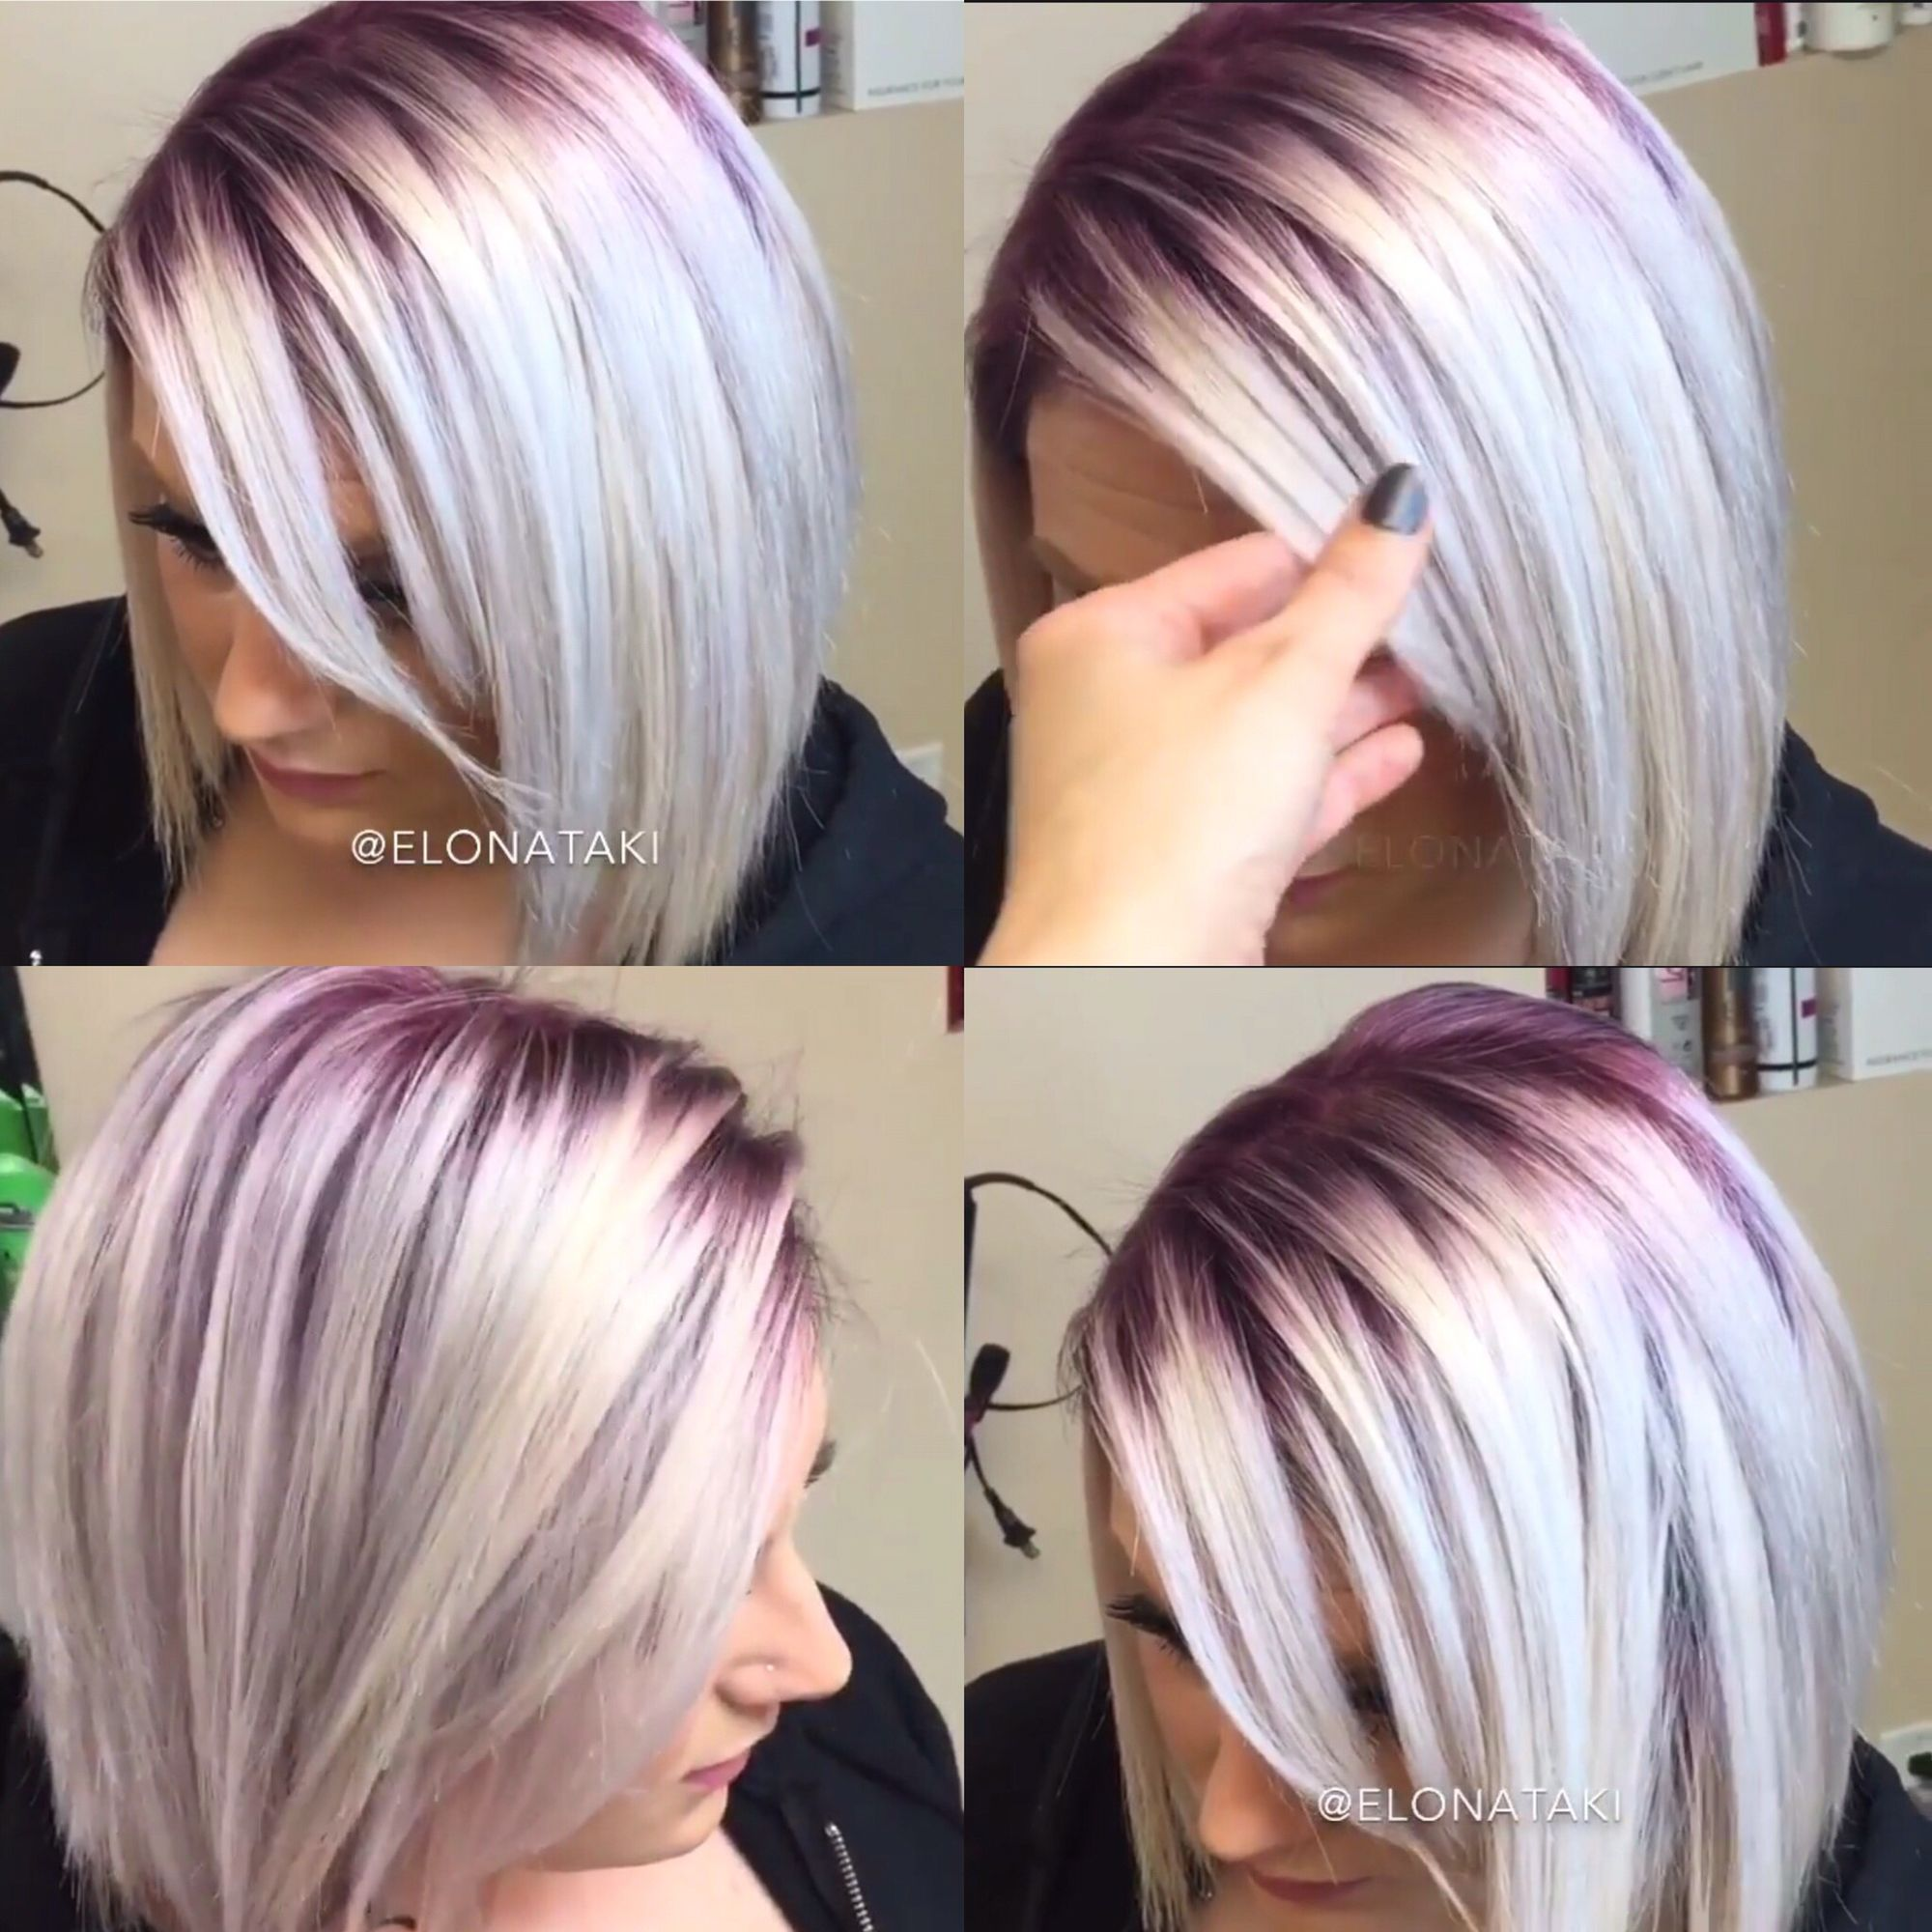 Silver blonde hair with dark purple roots.